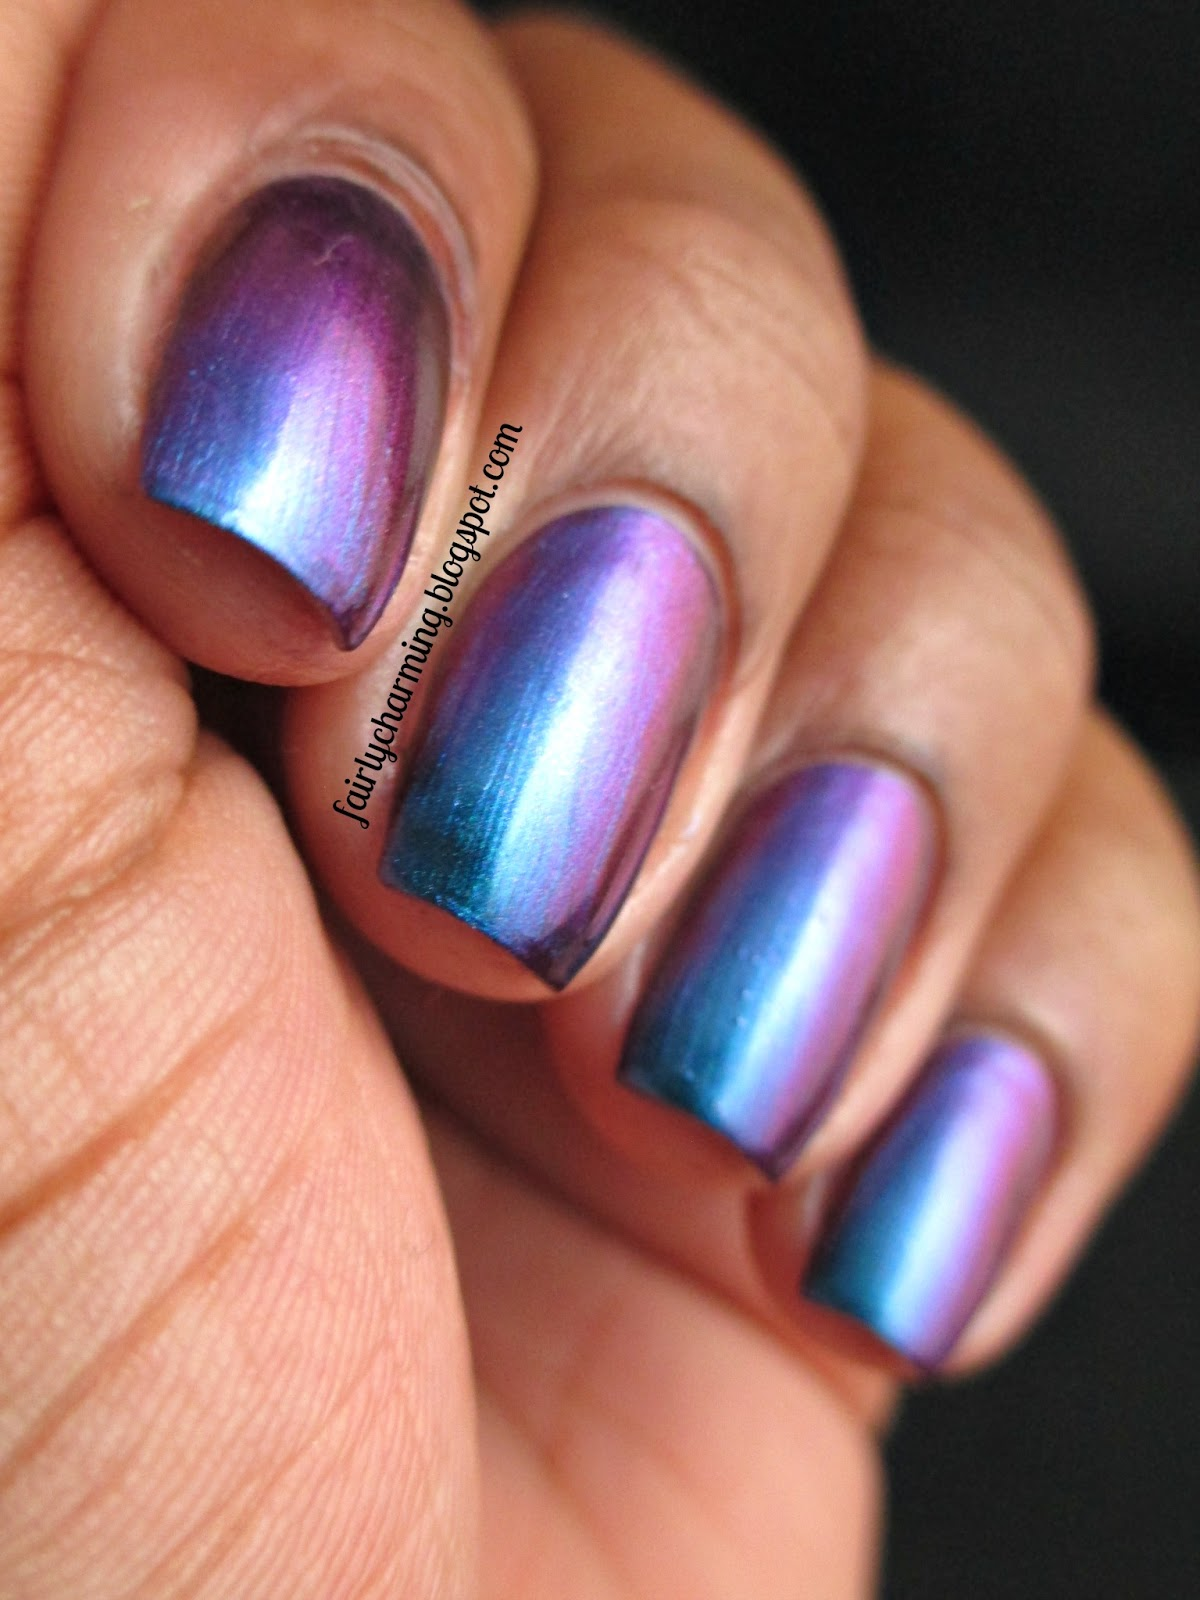 I Love Nail Polish - Birefringence